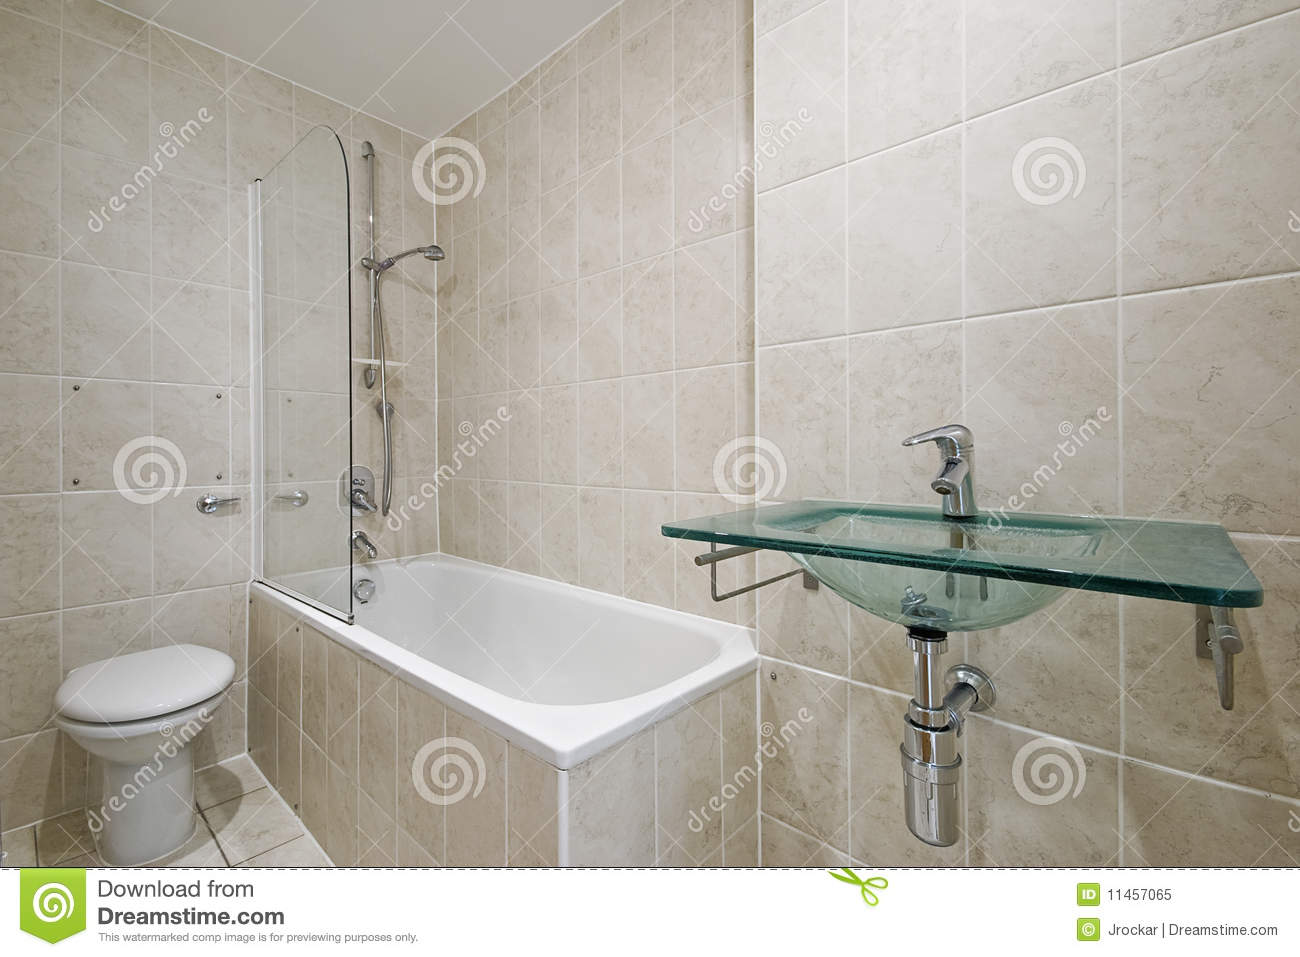 Bathroom With Floor To Ceiling Tiles Royalty Free Stock Photo Image 11457065